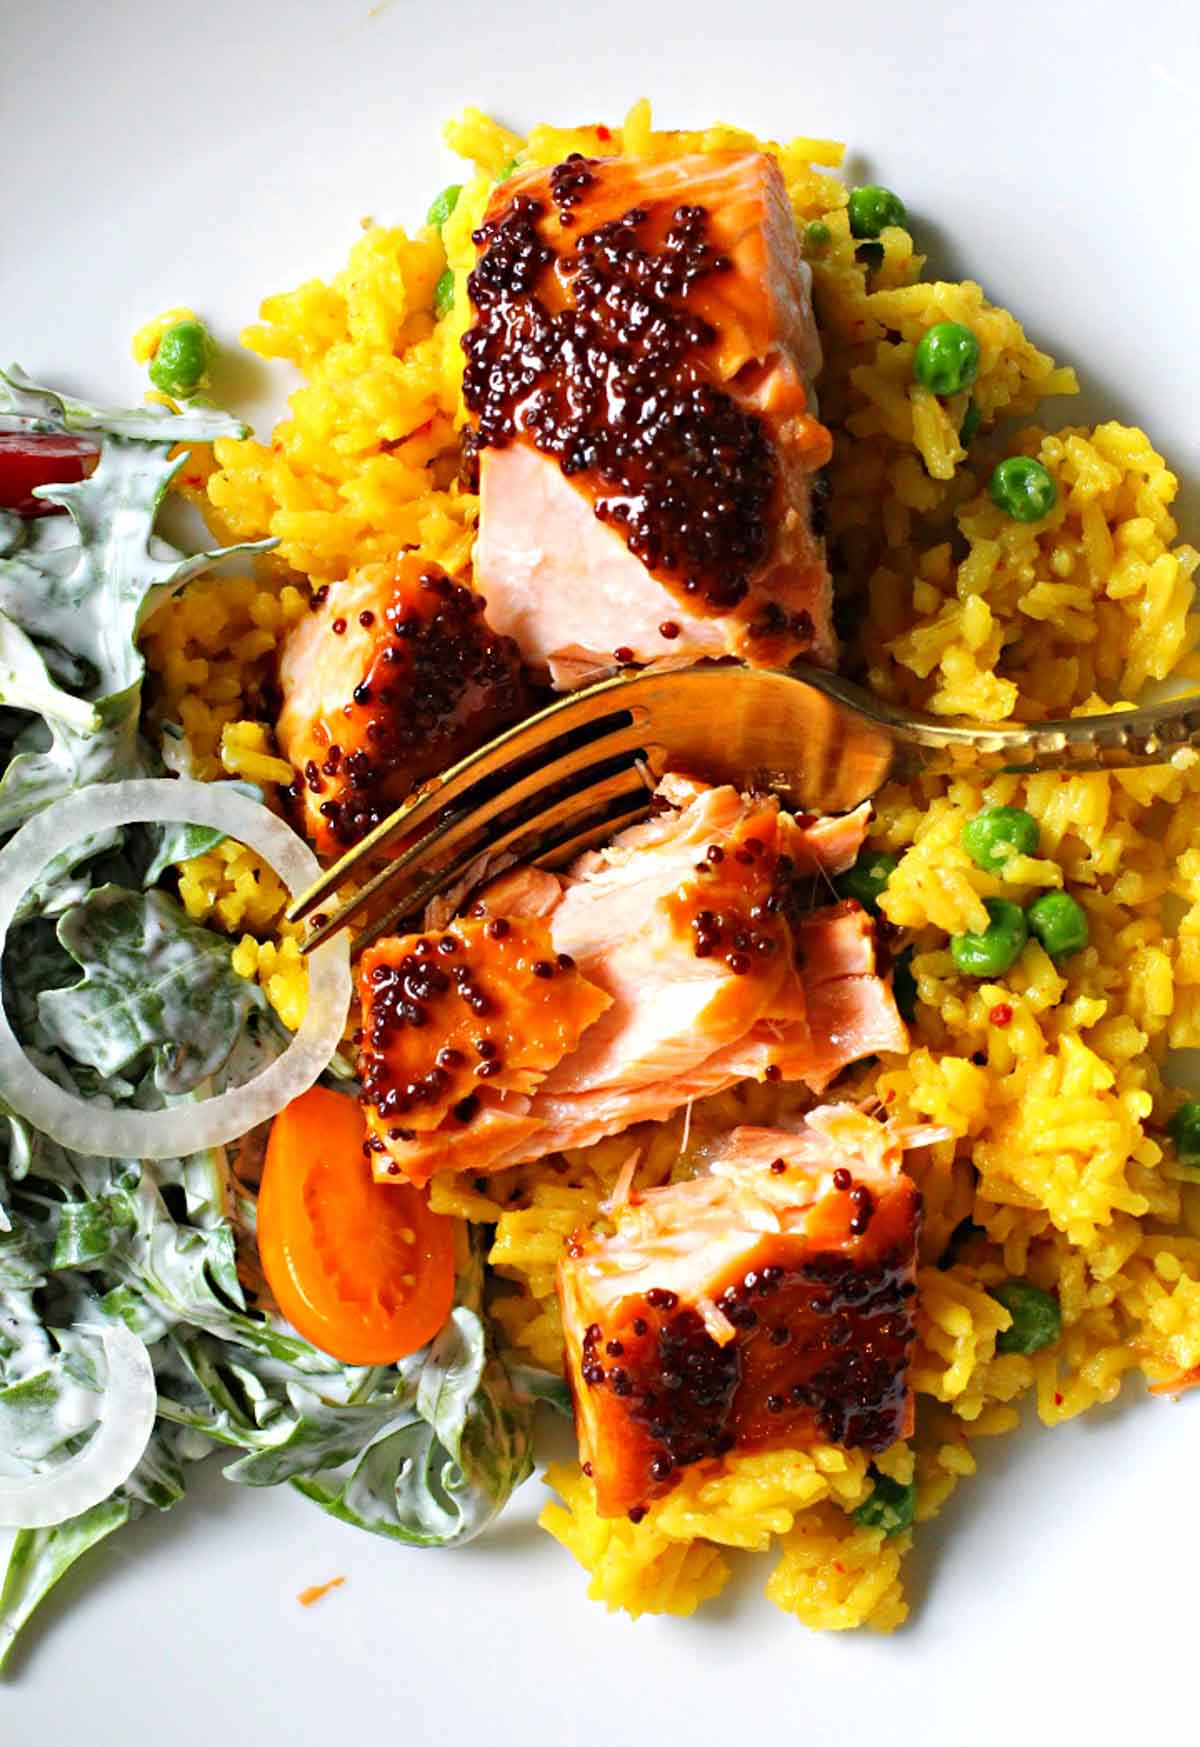 Salmon fillets glazed with maple mustard served over yellow rice and a side salad tossed with buttermilk ranch dressing